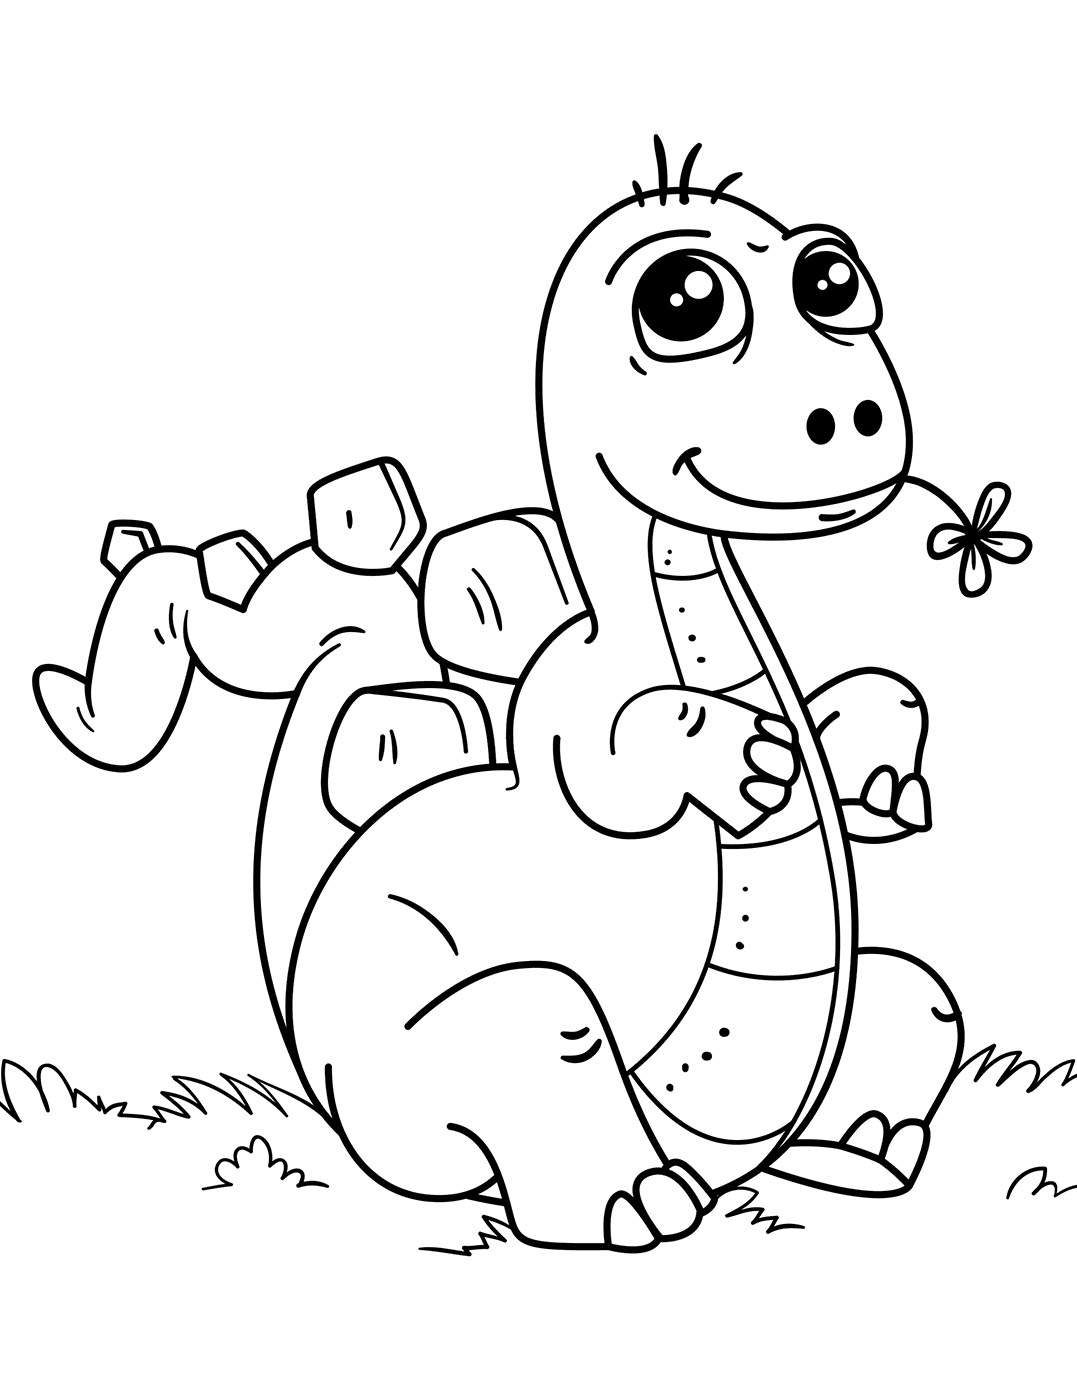 dinosaur coloring image dinosaur coloring pages to download and print for free image dinosaur coloring